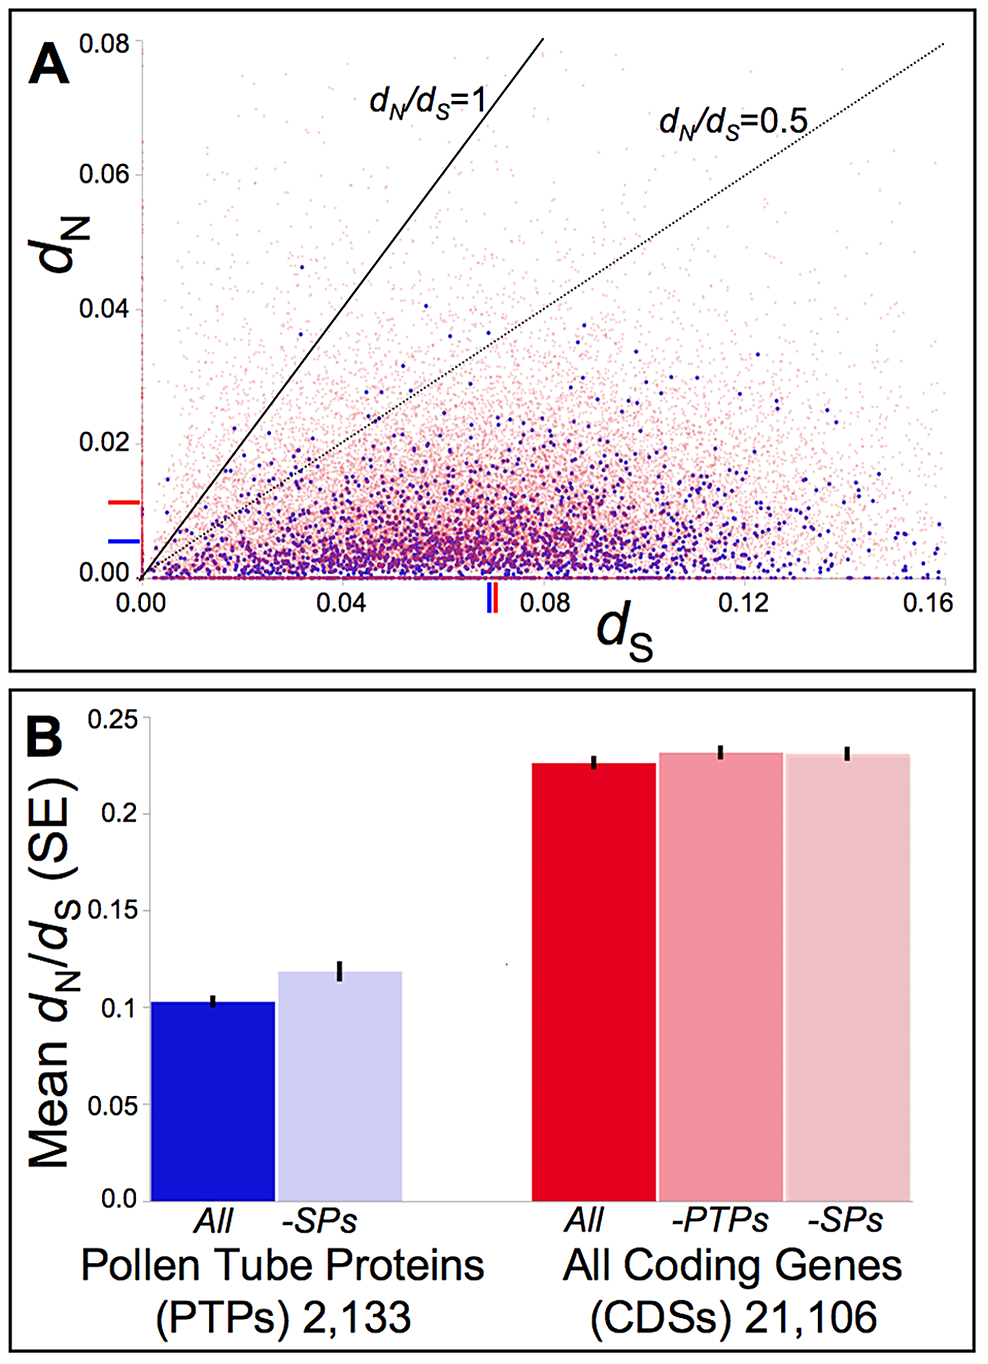 Distribution of pairwise non-synonymous (<i>d</i><sub>N</sub>) and synonymous (<i>d</i><sub>S</sub>) nucleotide substitutions as well as their ratio (<i>d</i><sub>N</sub>/<i>d</i><sub>S</sub>, or ω) among <i>Mimulus</i> pollen tube proteins (PTPs) and coding sequences (CDSs) genome-wide.